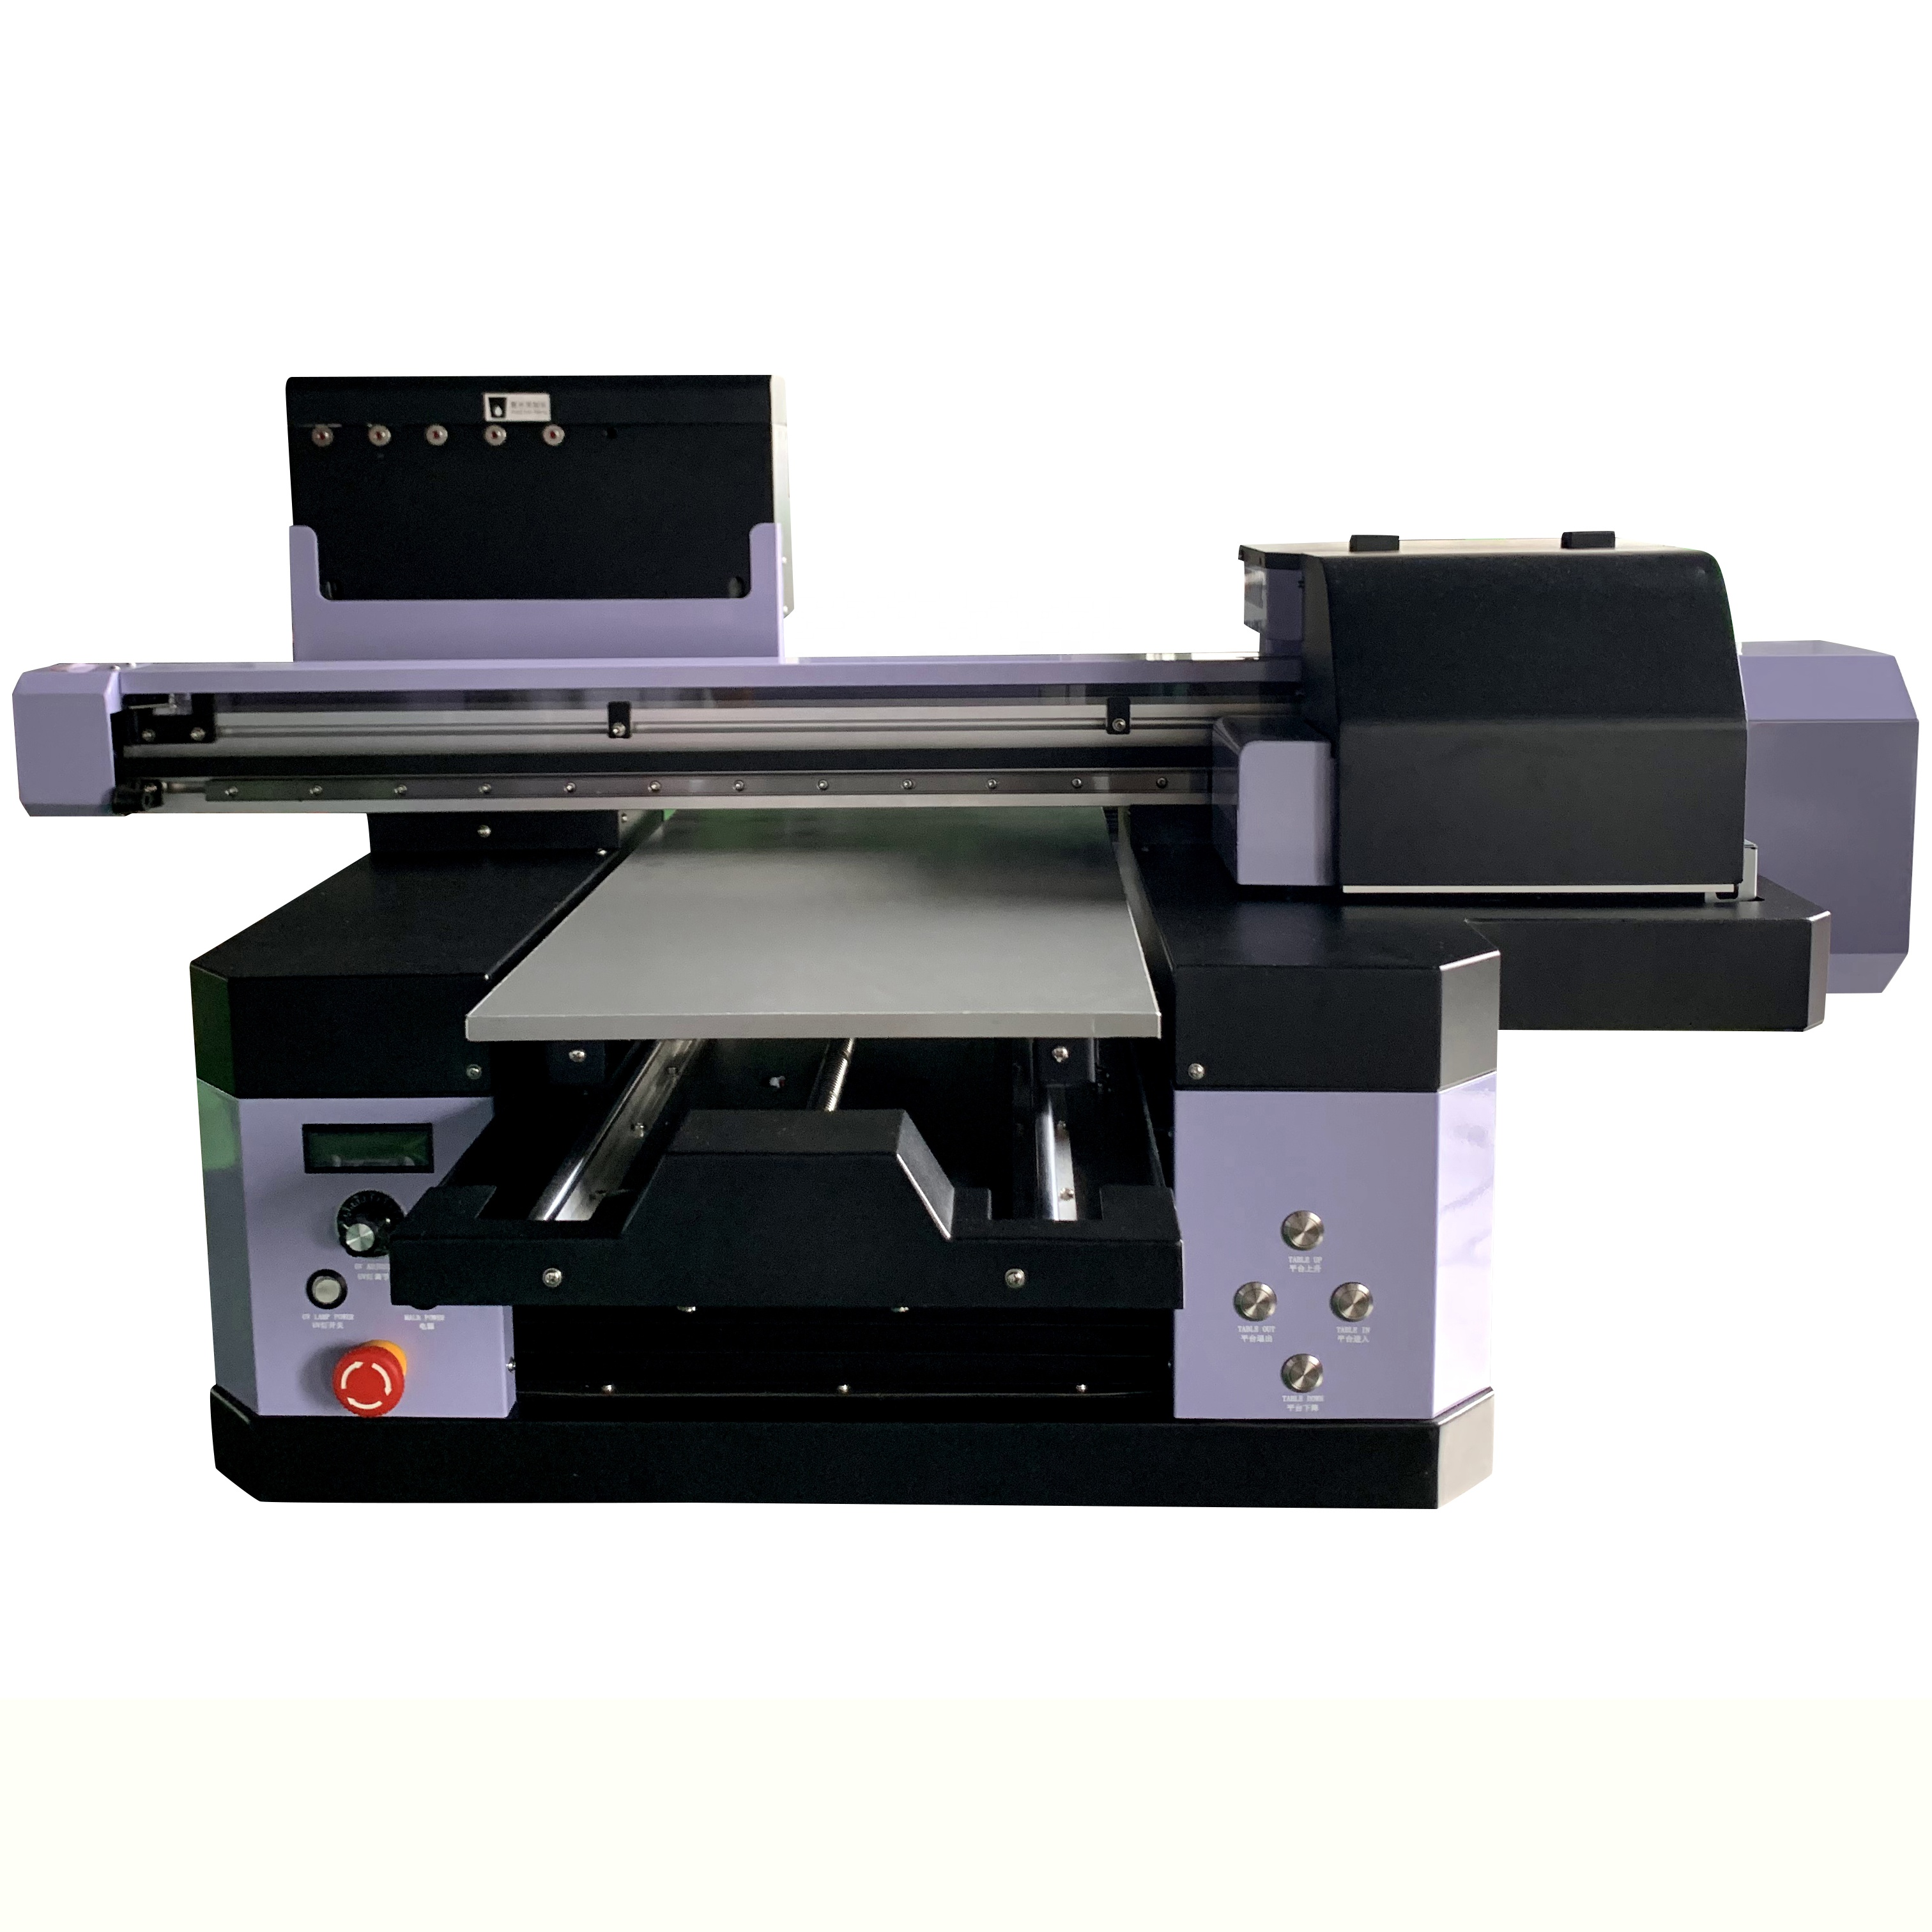 Hot Selling 2019 Dual Heads A3 Size Uv Printer Fabriek Prijs In Kenia